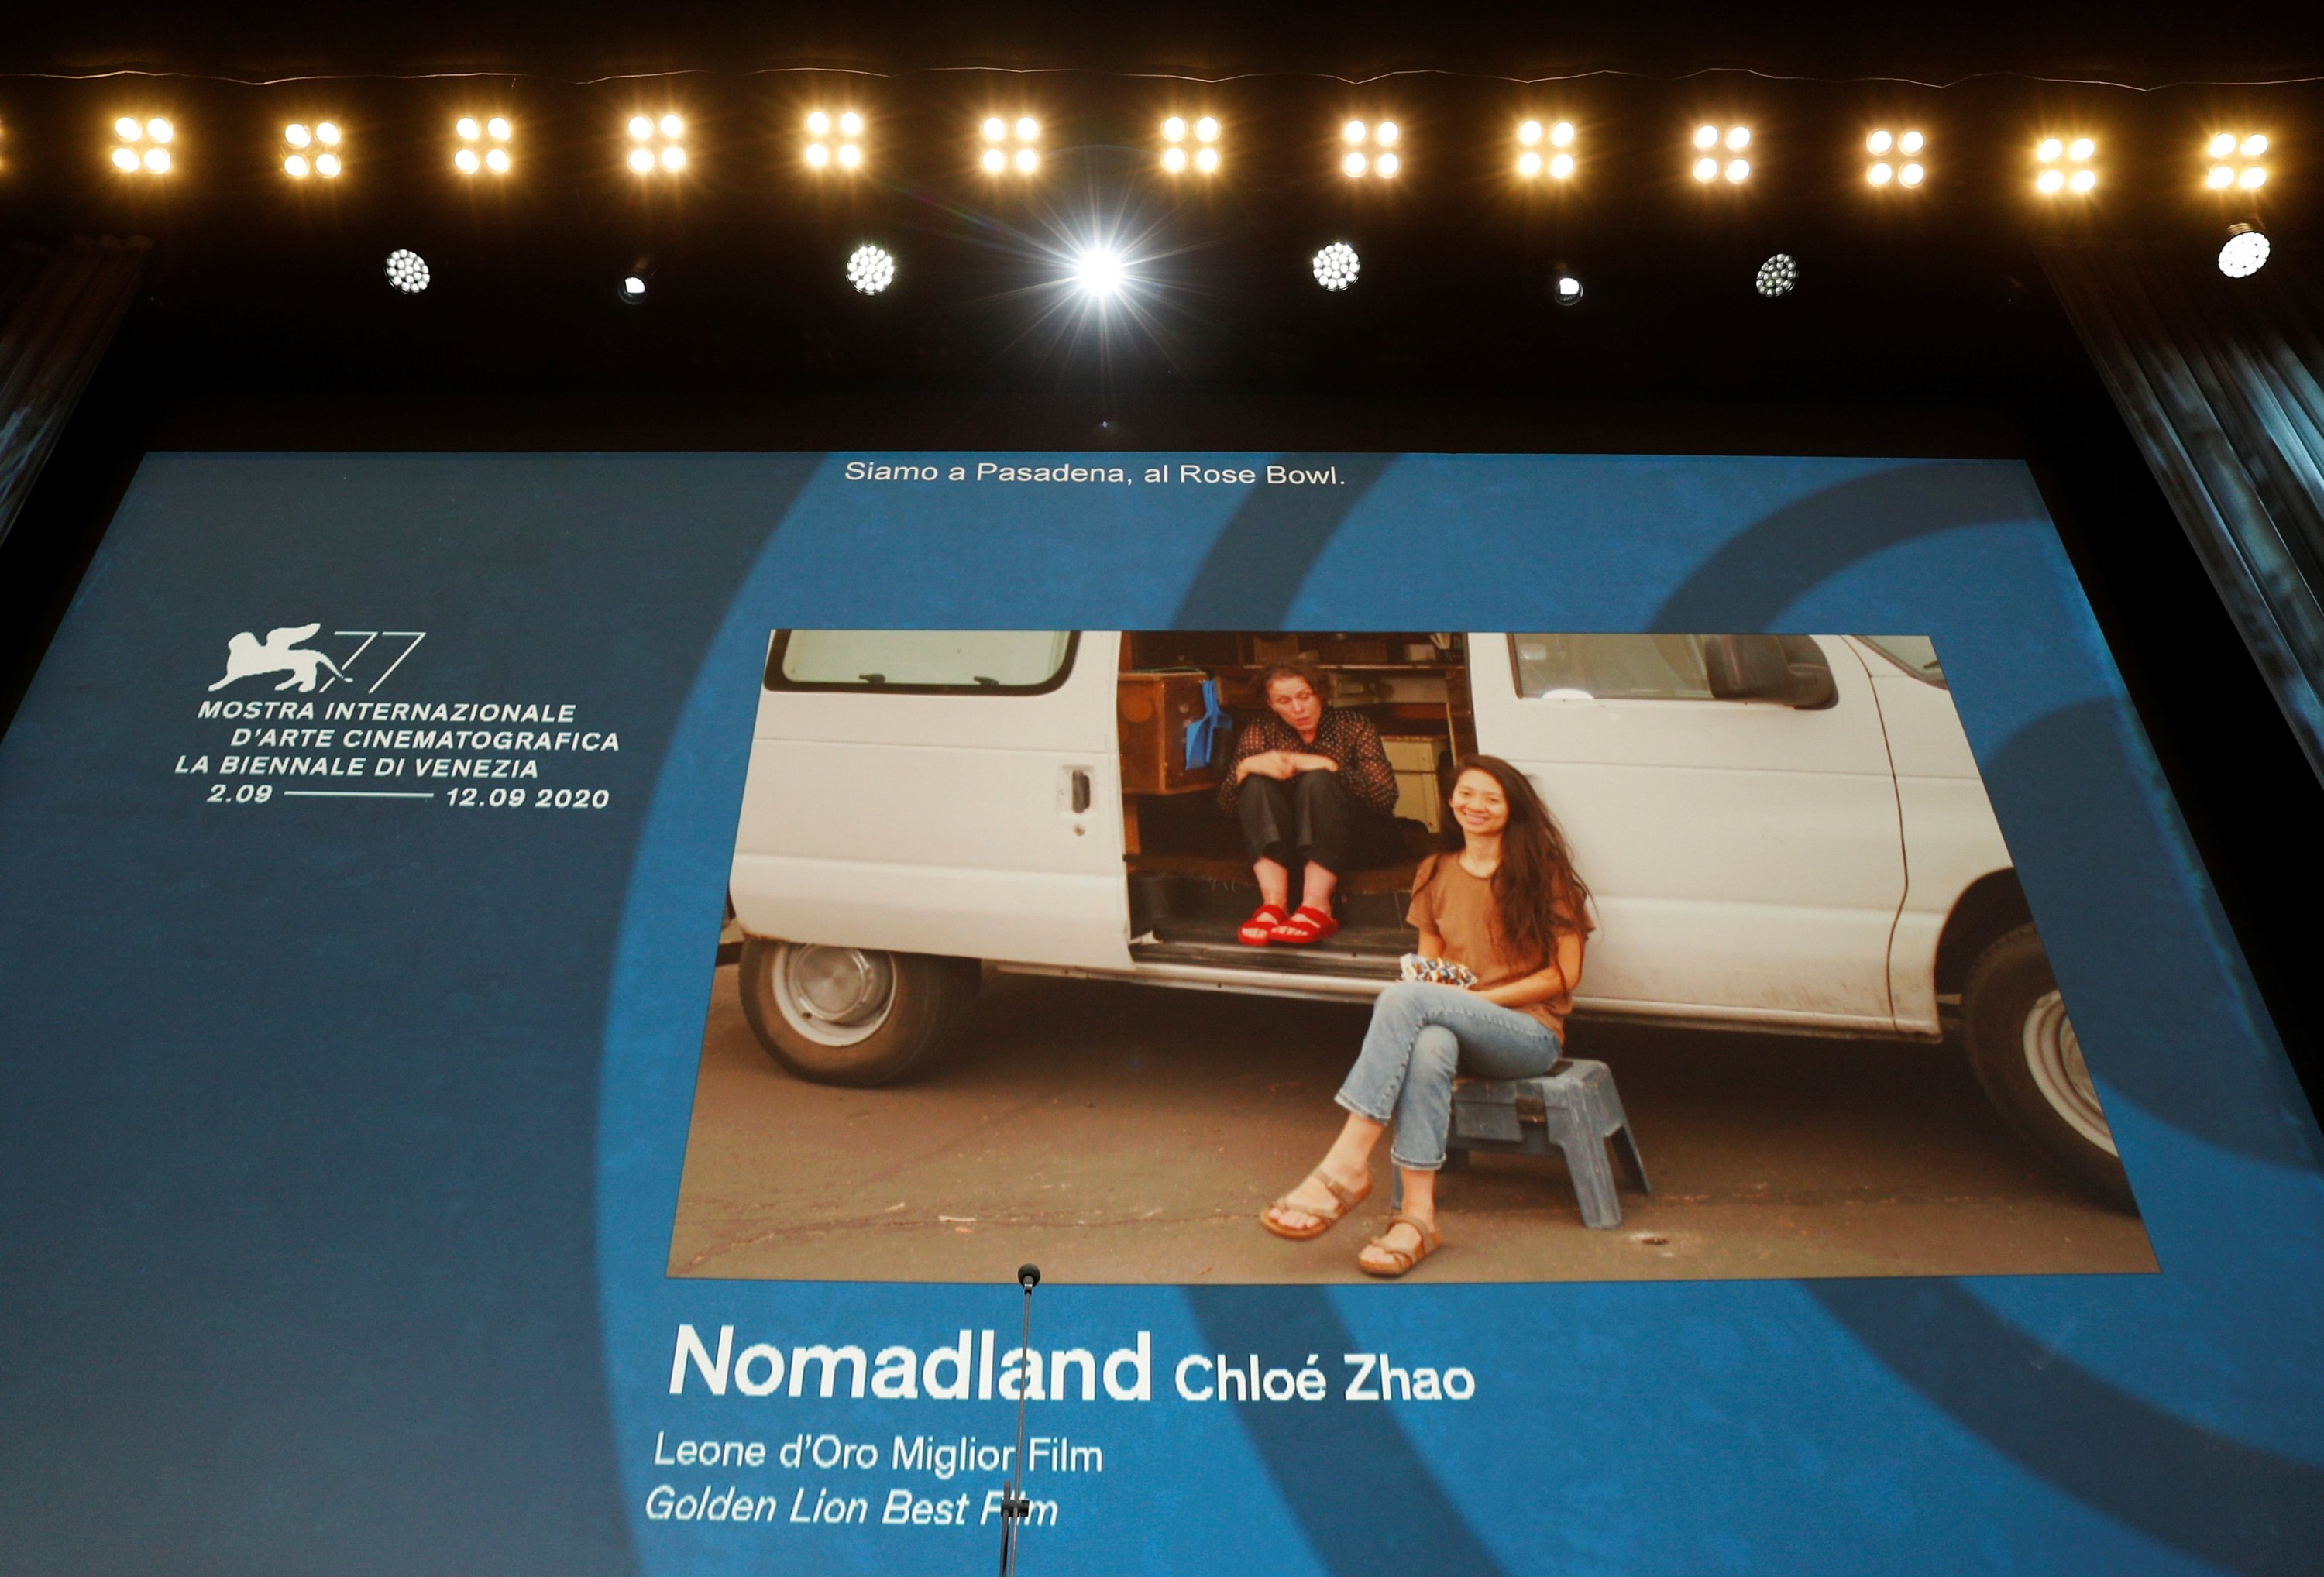 Chloe Zhao S Nomadland Wins Top Prize At Venice Film Festival Daily Sabah